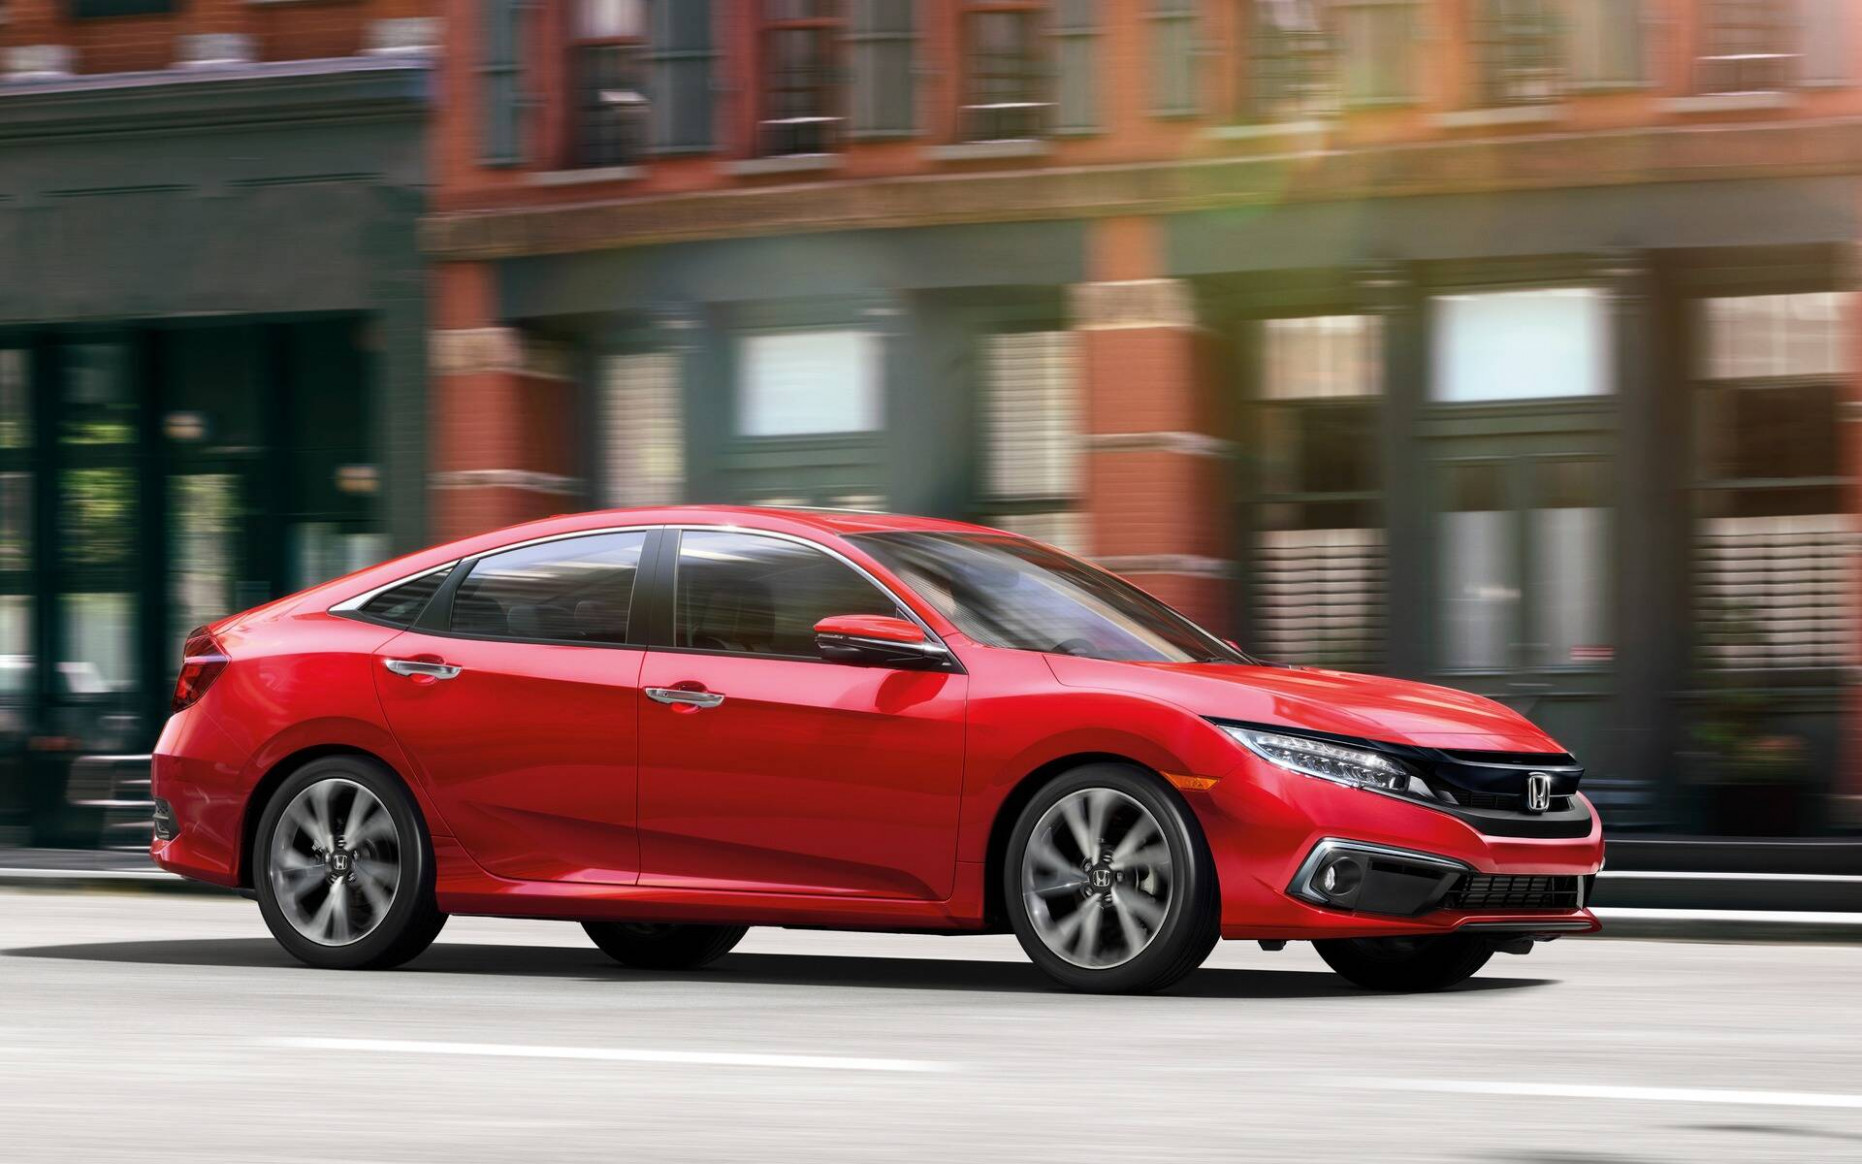 Redesign and Concept 2022 Honda Accord Coupe Sedan